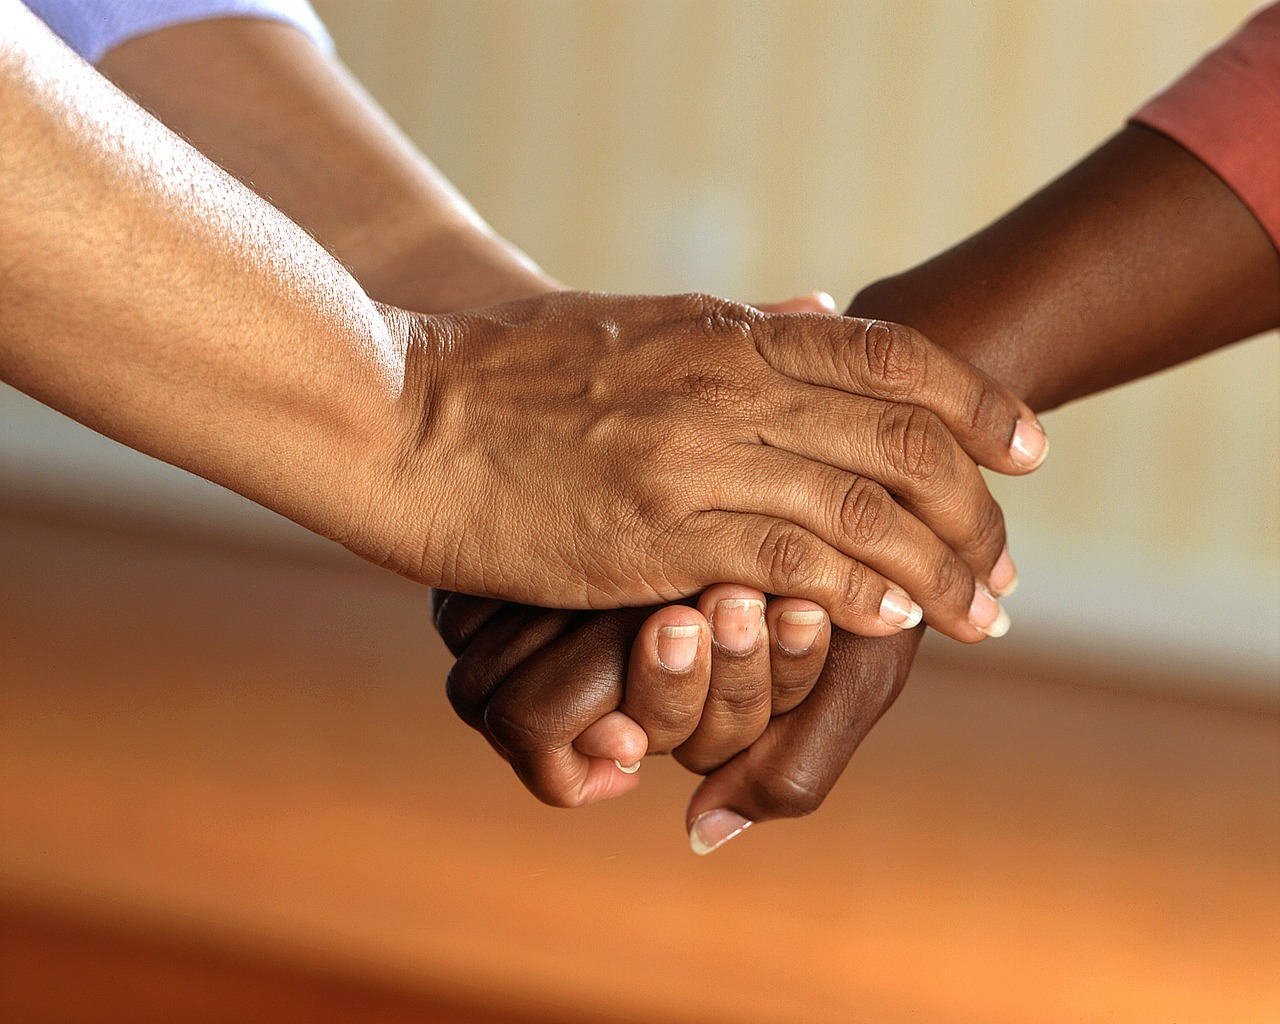 support between two elderly people as they tenderly hold hands